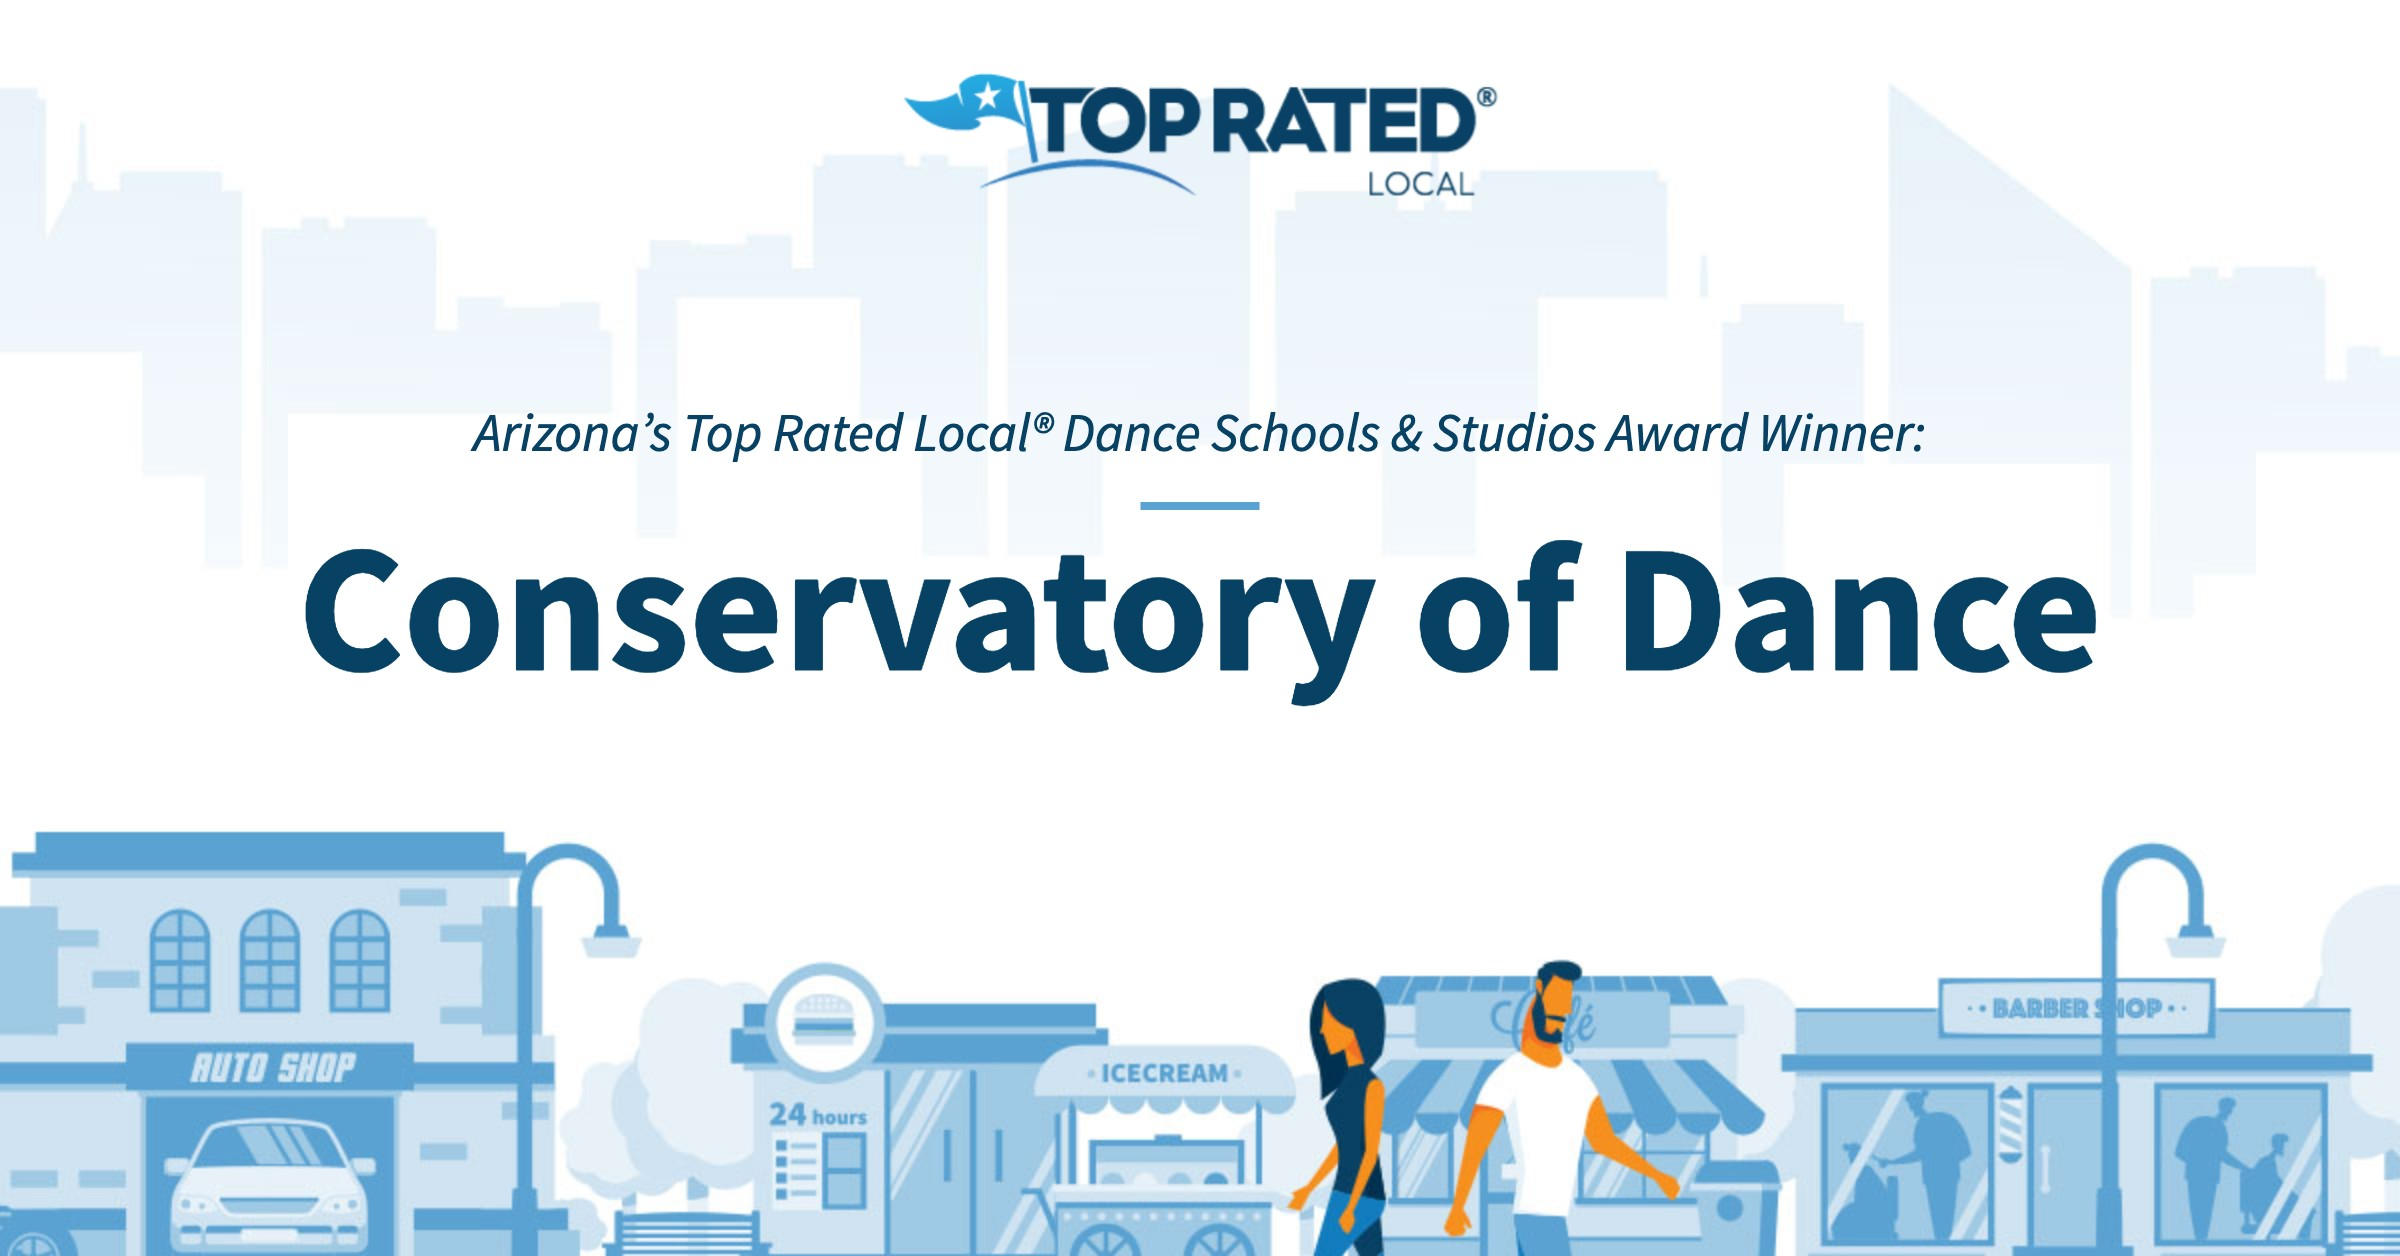 Arizona's Top Rated Local® Dance Schools & Studios Award Winner: Conservatory of Dance